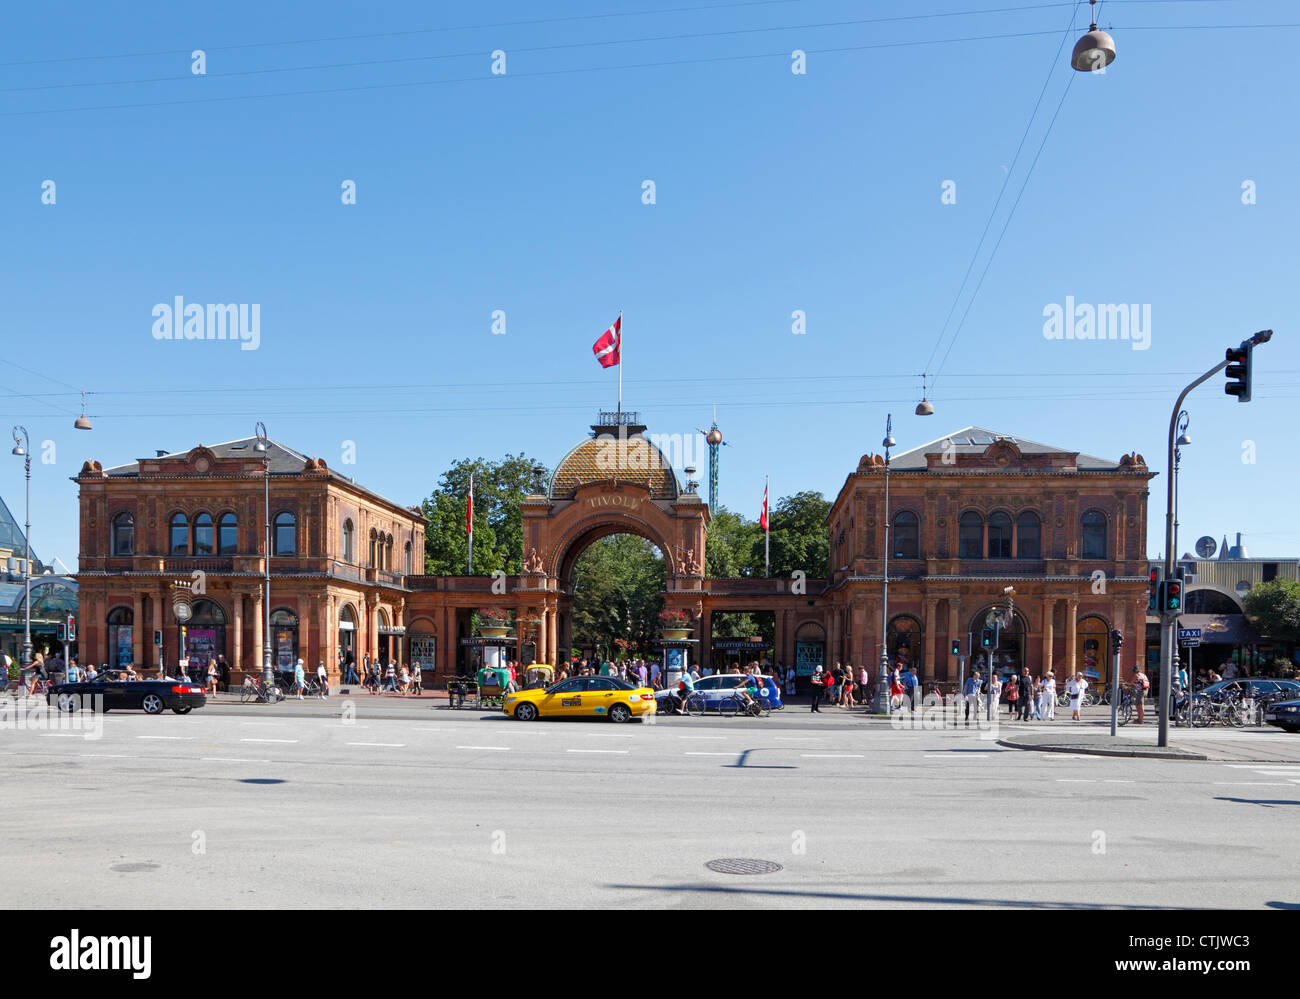 The historic main entrance to the old Tivoli Gardens on Vesterbrogade in Copenhagen, Denmark on a sunny summer's - Stock Image